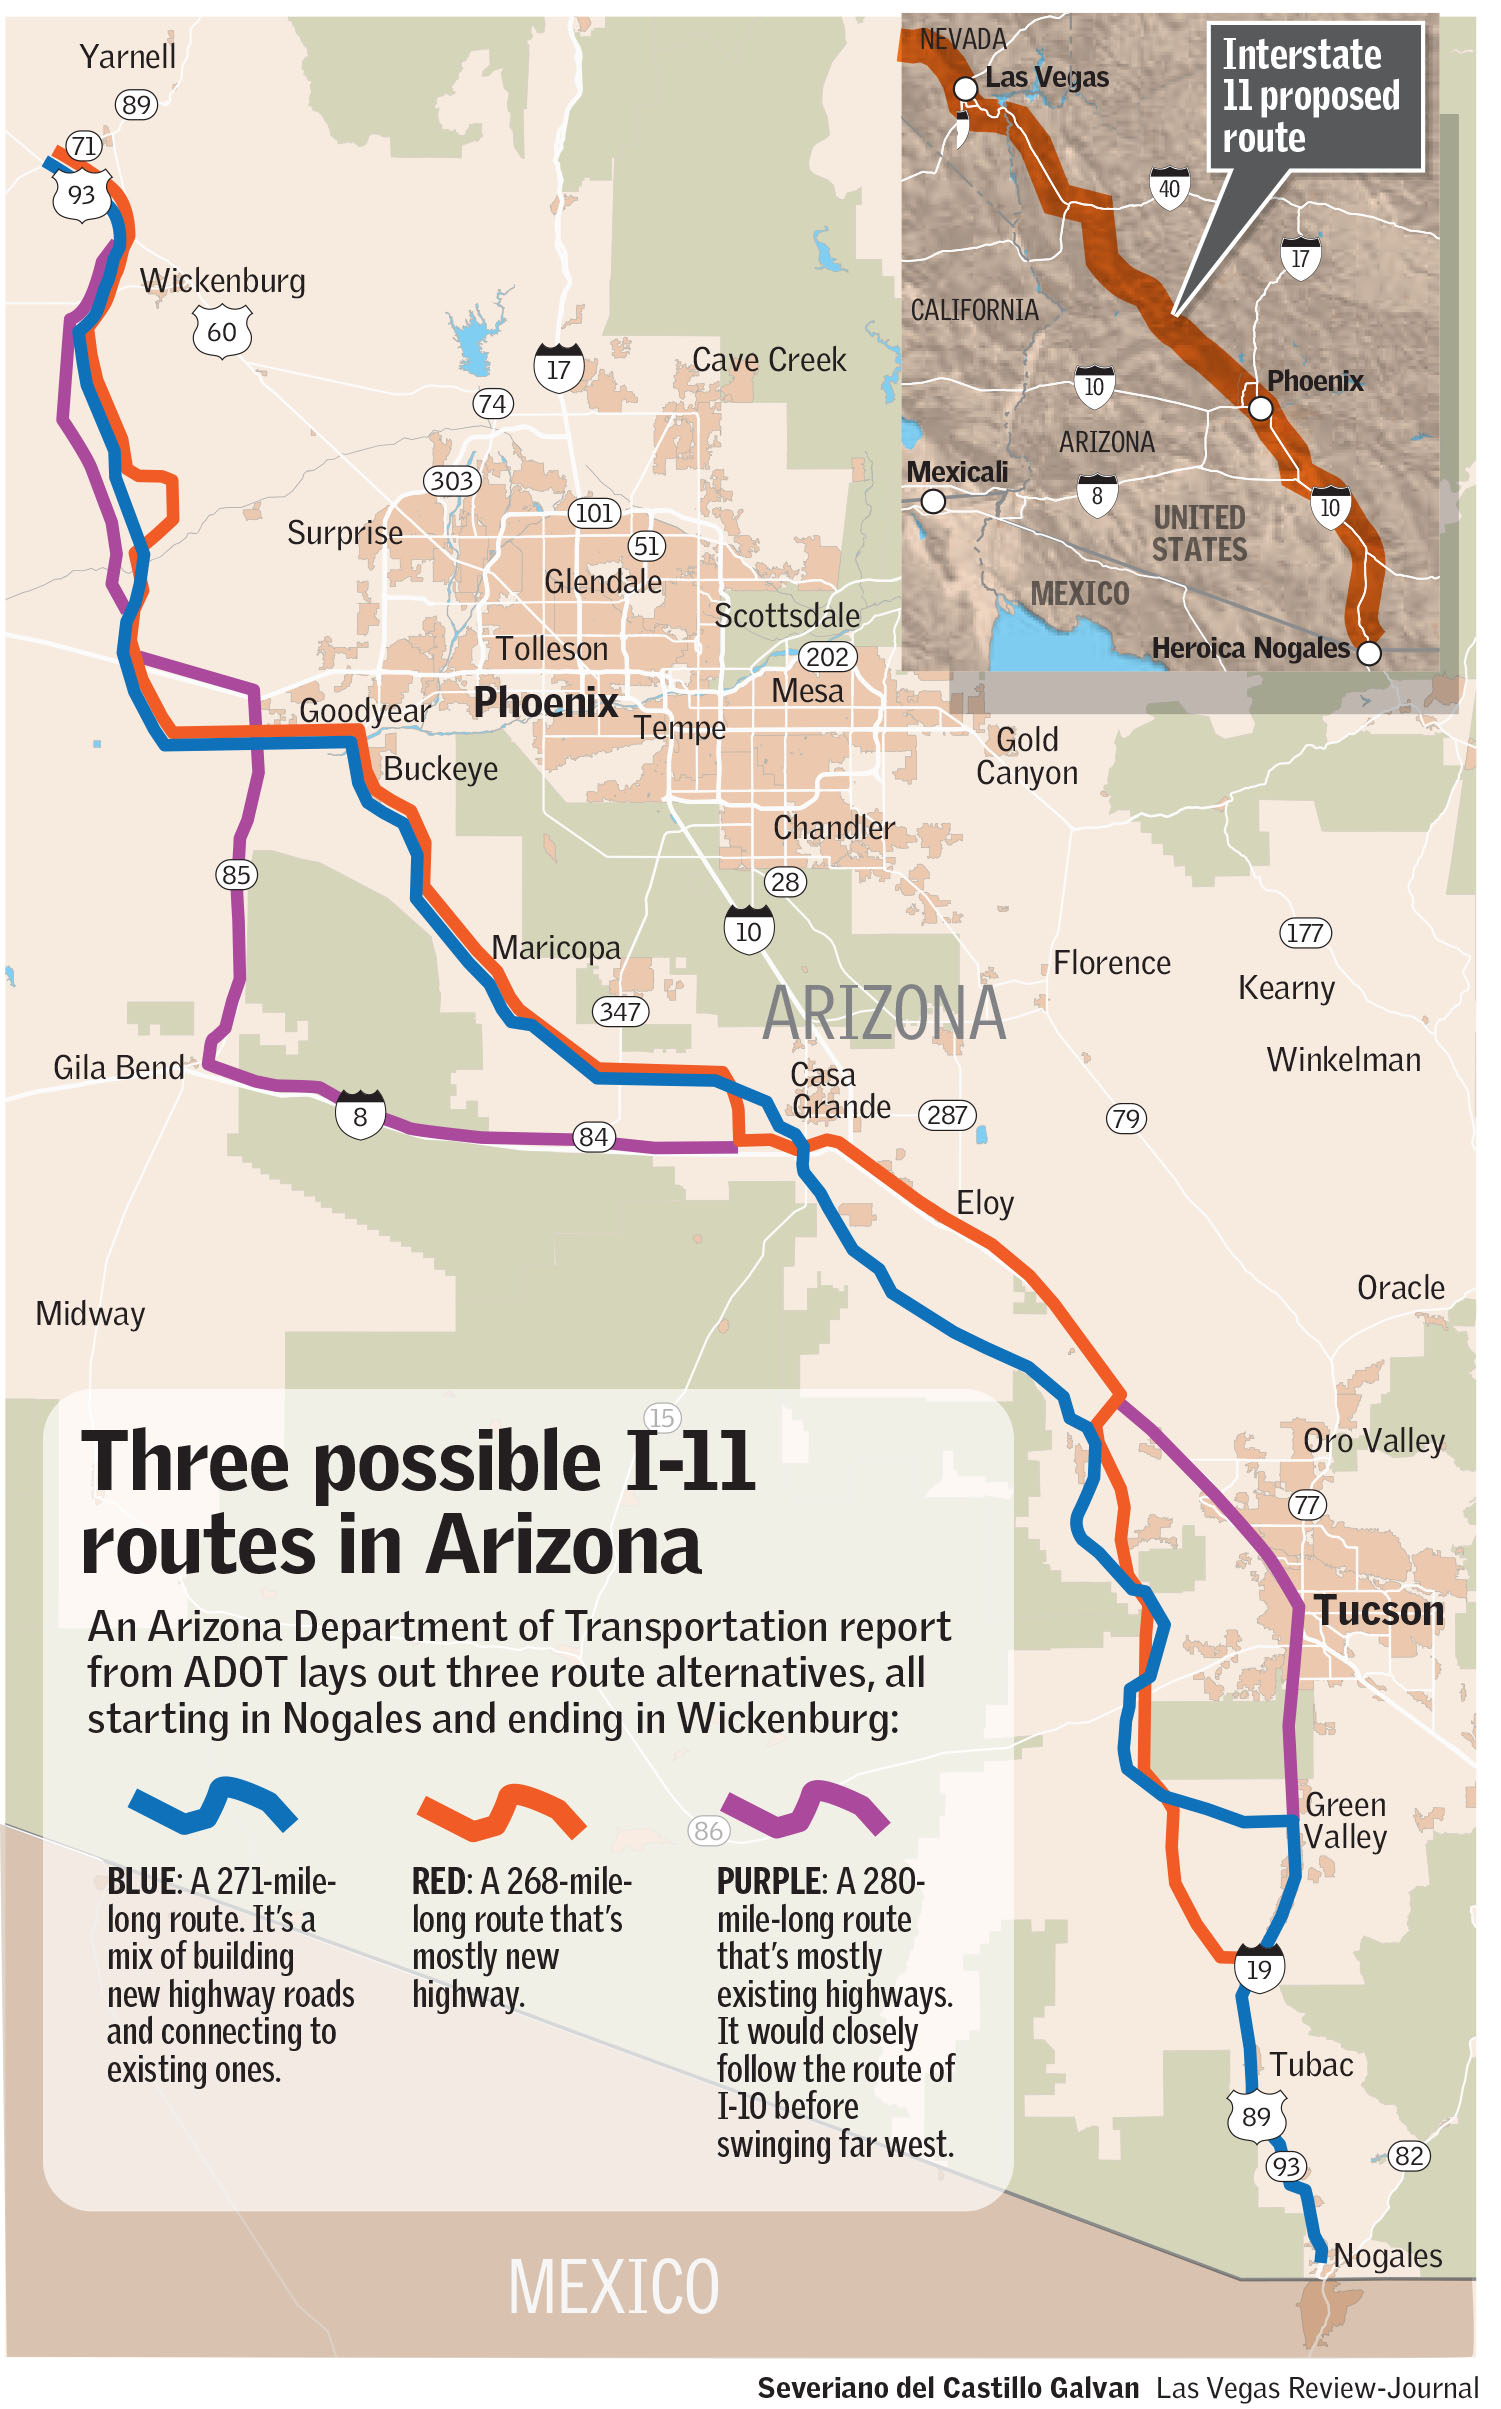 Map Of Arizona Freeway Shootings.Arizona Officials Study 3 Possible Routes For Future I 11 Las